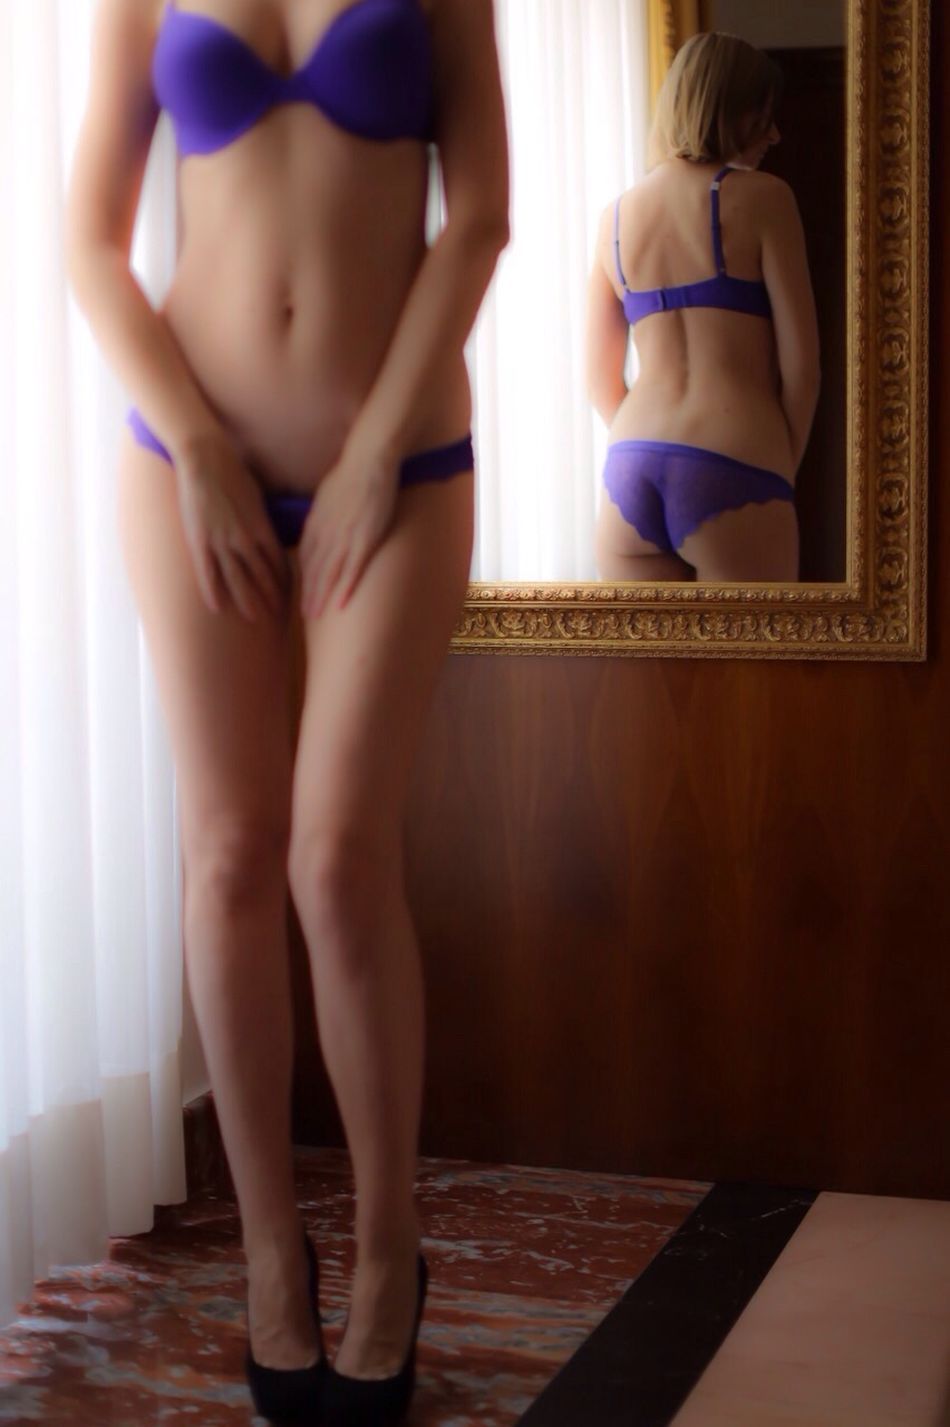 Reflection Mirror ThatsMe The Amazing Human Body Enjoying The View Woman Standing Legs Lingerie Beautiful Woman Portrait Of A Woman Human Body Purple Femininity Curves Softness Blonde Canonphotography Heels Taking Photos Bedroom